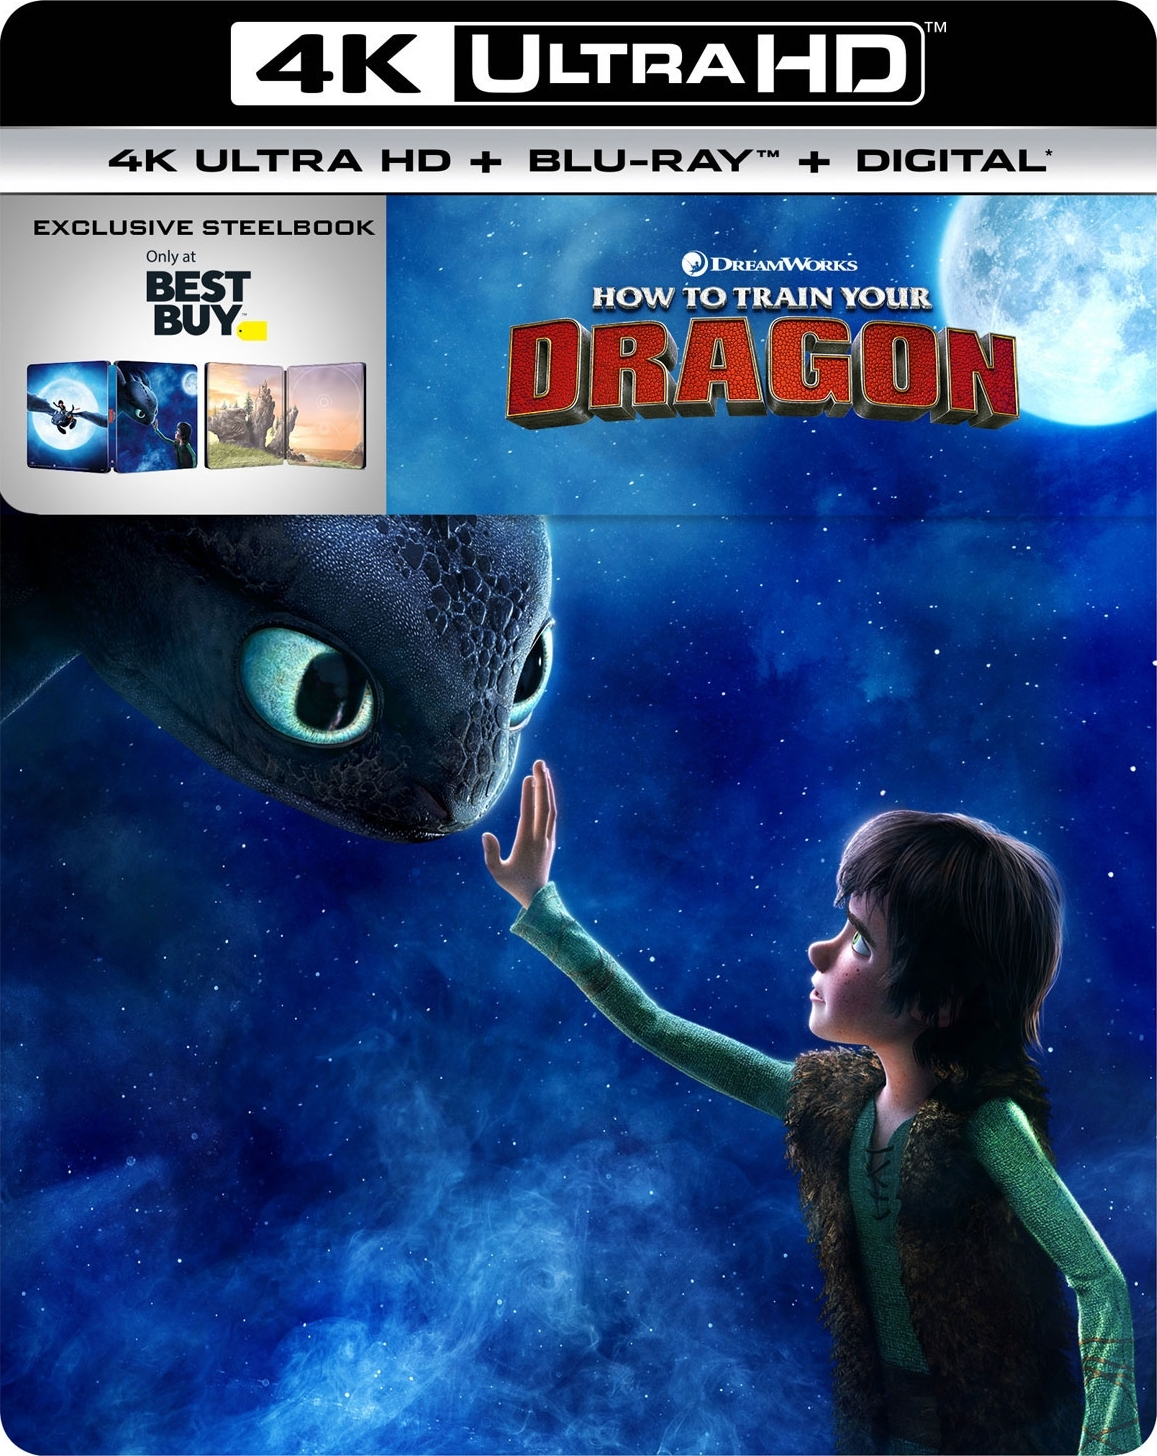 How to Train Your Dragon (SteelBook)(4K Ultra HD Blu-ray)(Pre-order / Feb 5)